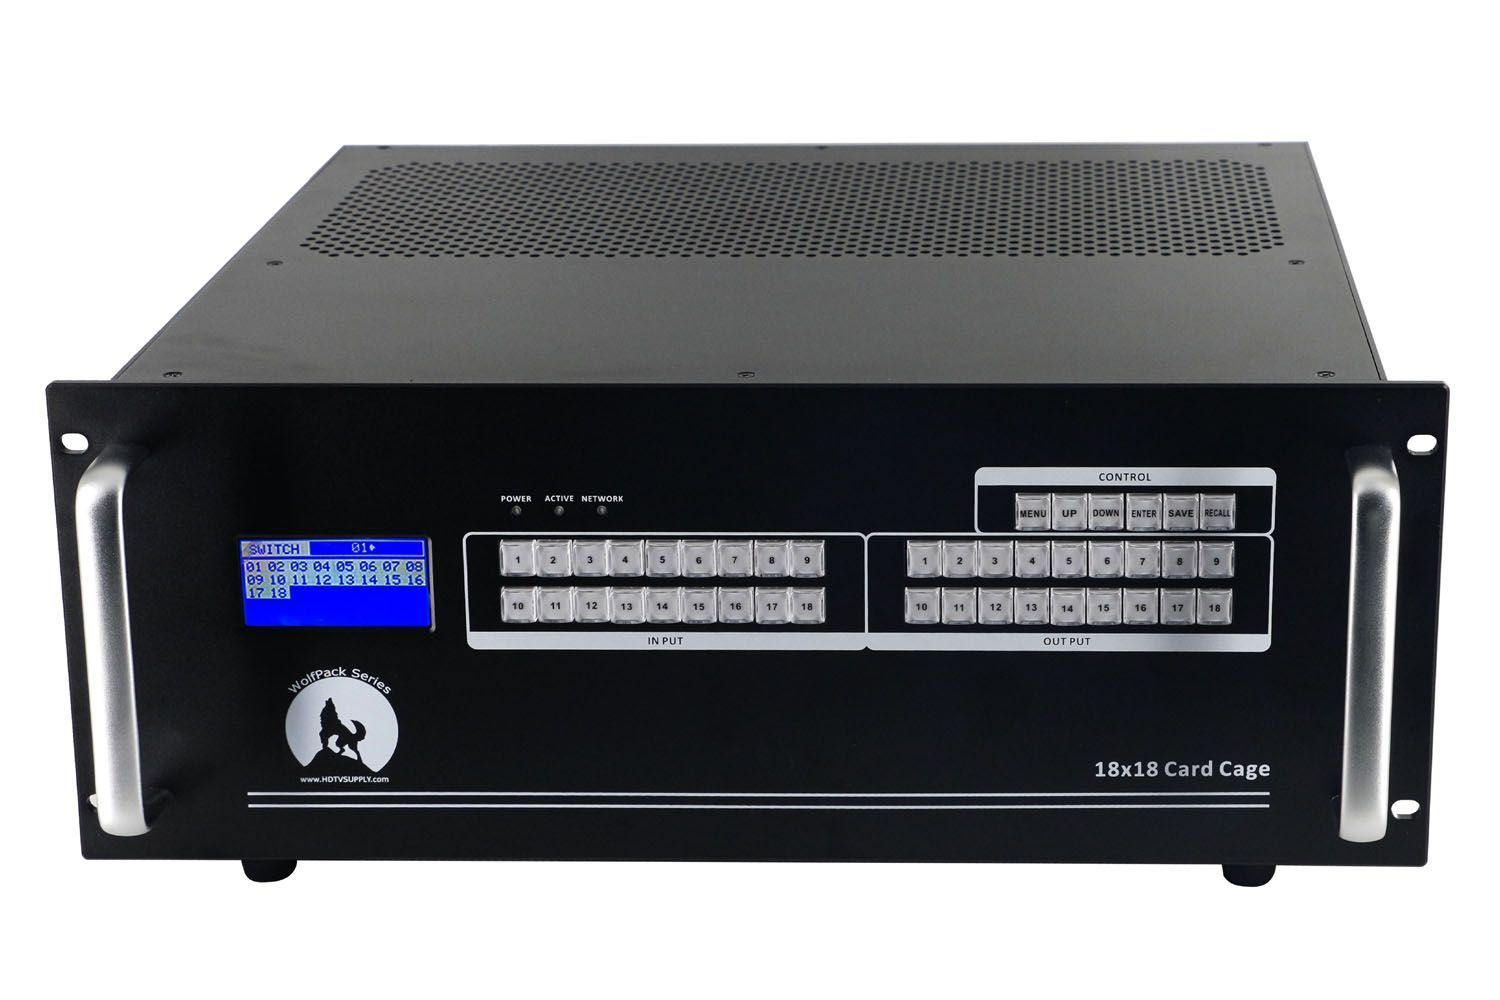 Fast 12x12 HDMI Matrix Switch w/Apps, WEB GUI, Video Wall, Separate Audio & Scaling